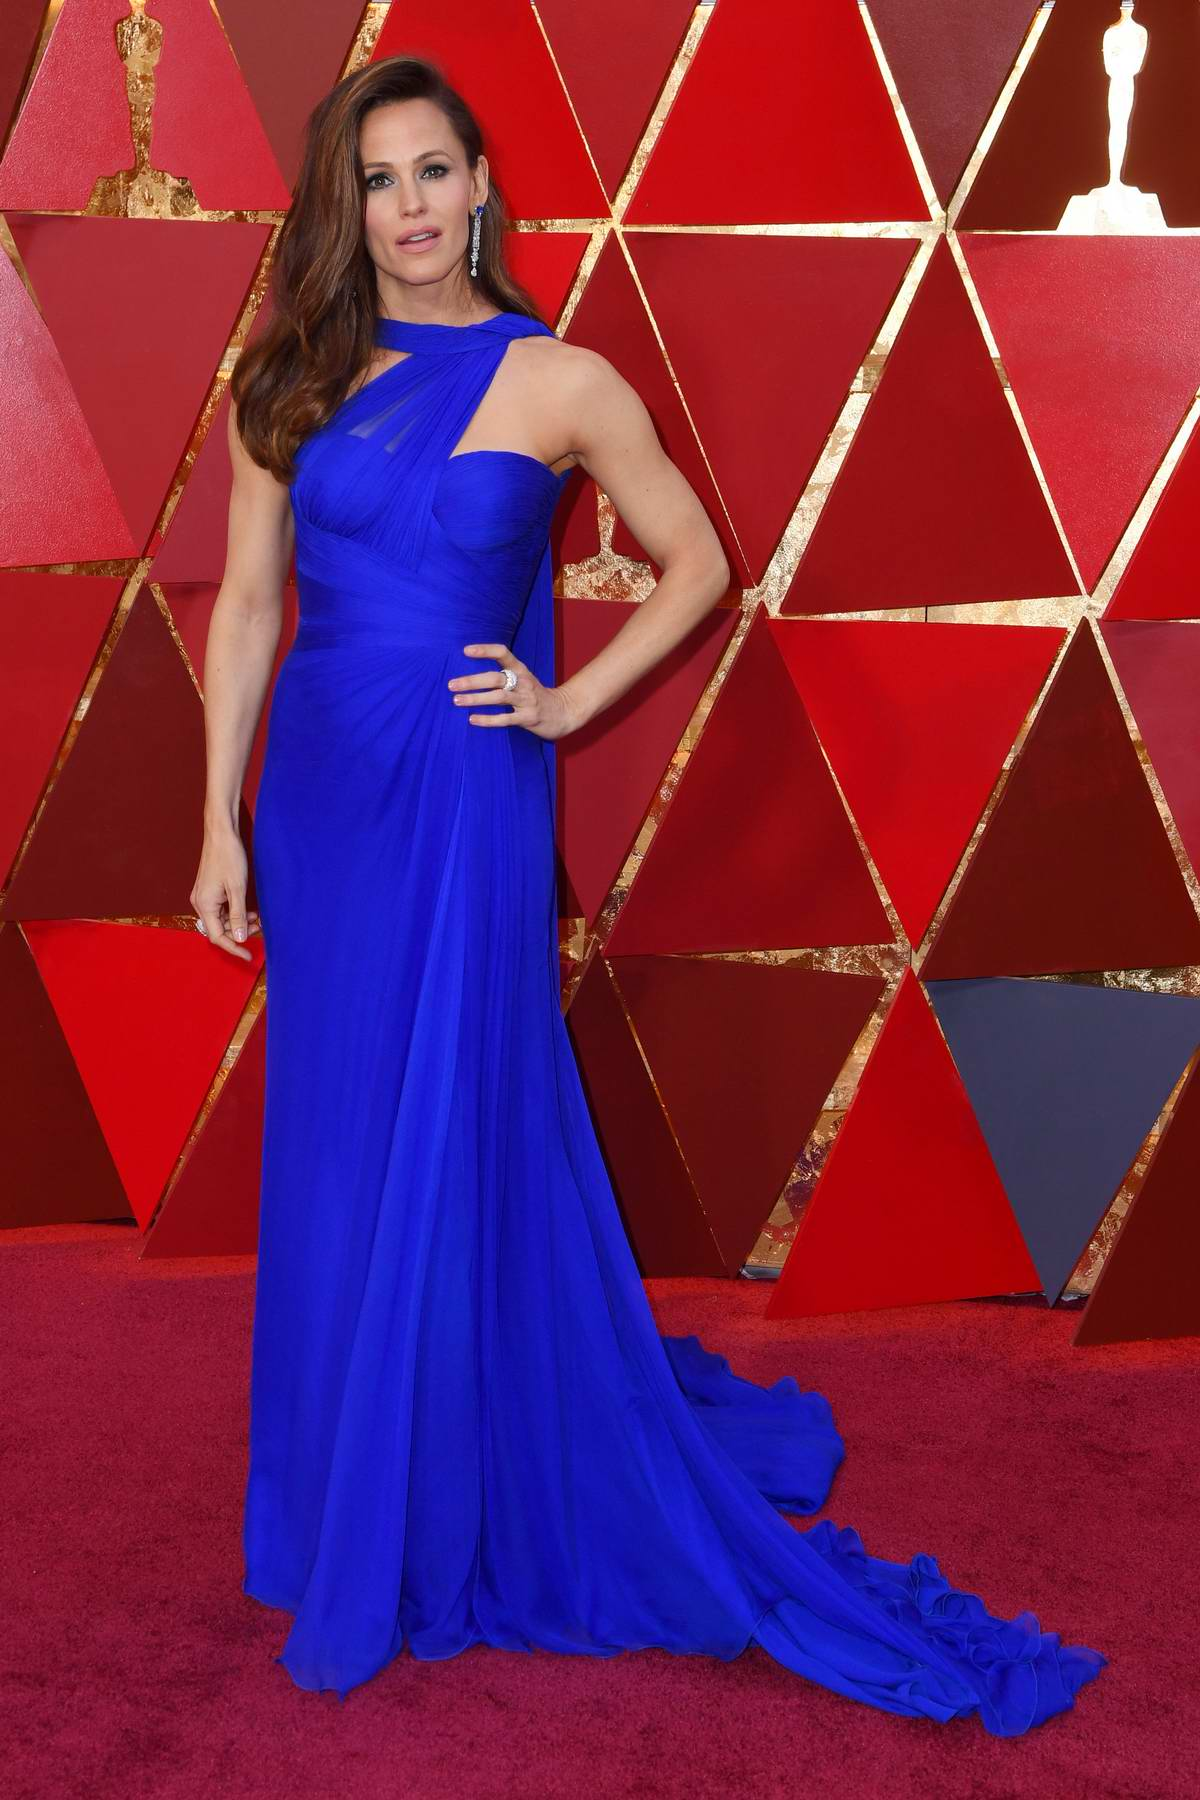 Jennifer Garner attends The 90th Annual Academy Awards (Oscars 2018) held at Dolby Theatre in Hollywood, Los Angeles